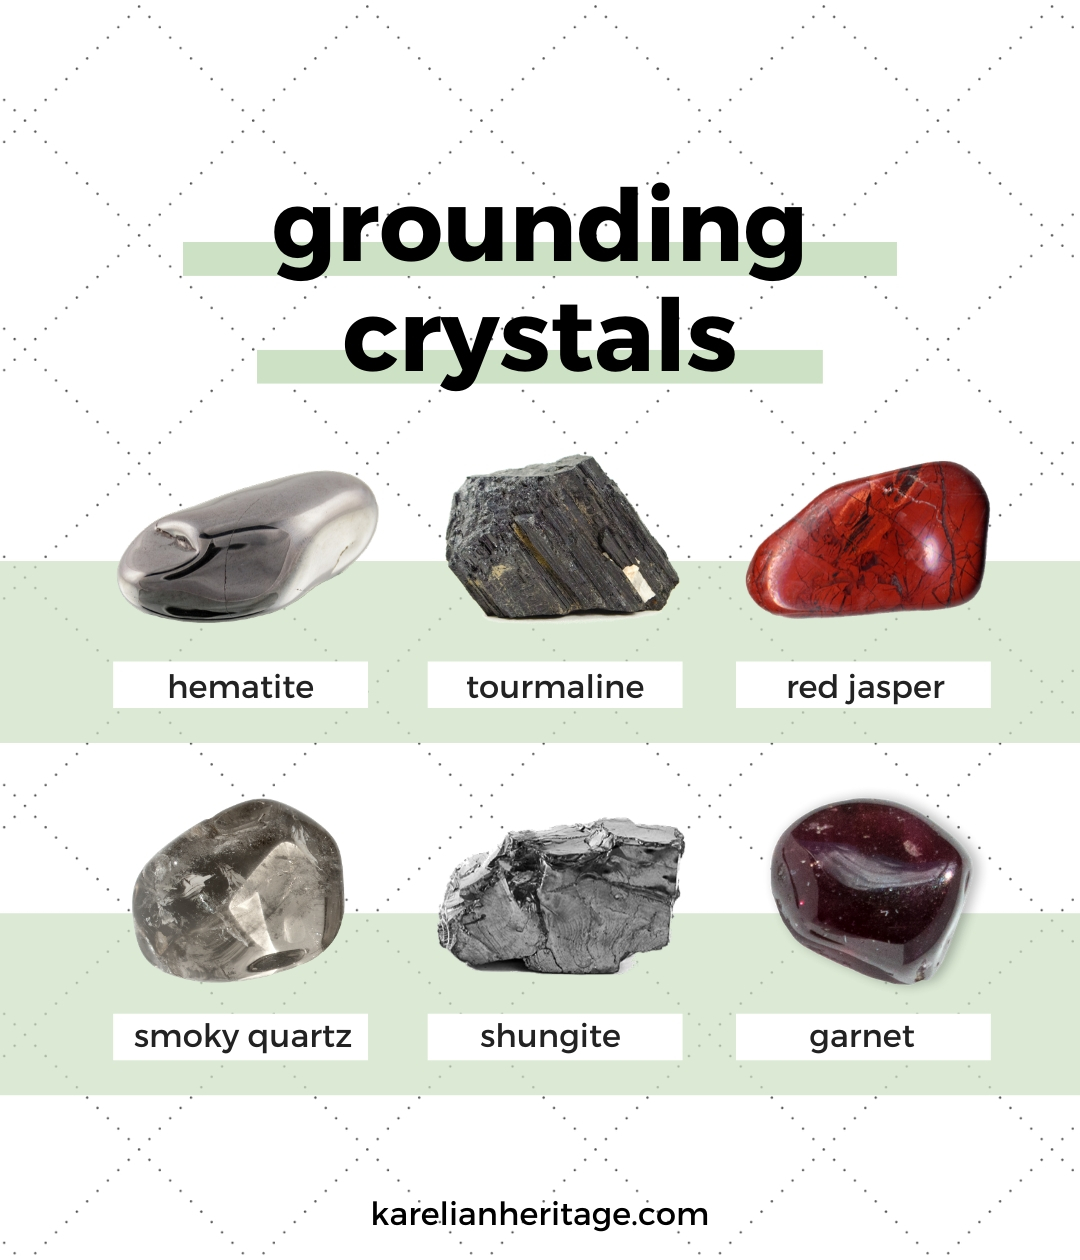 grounding-crystals